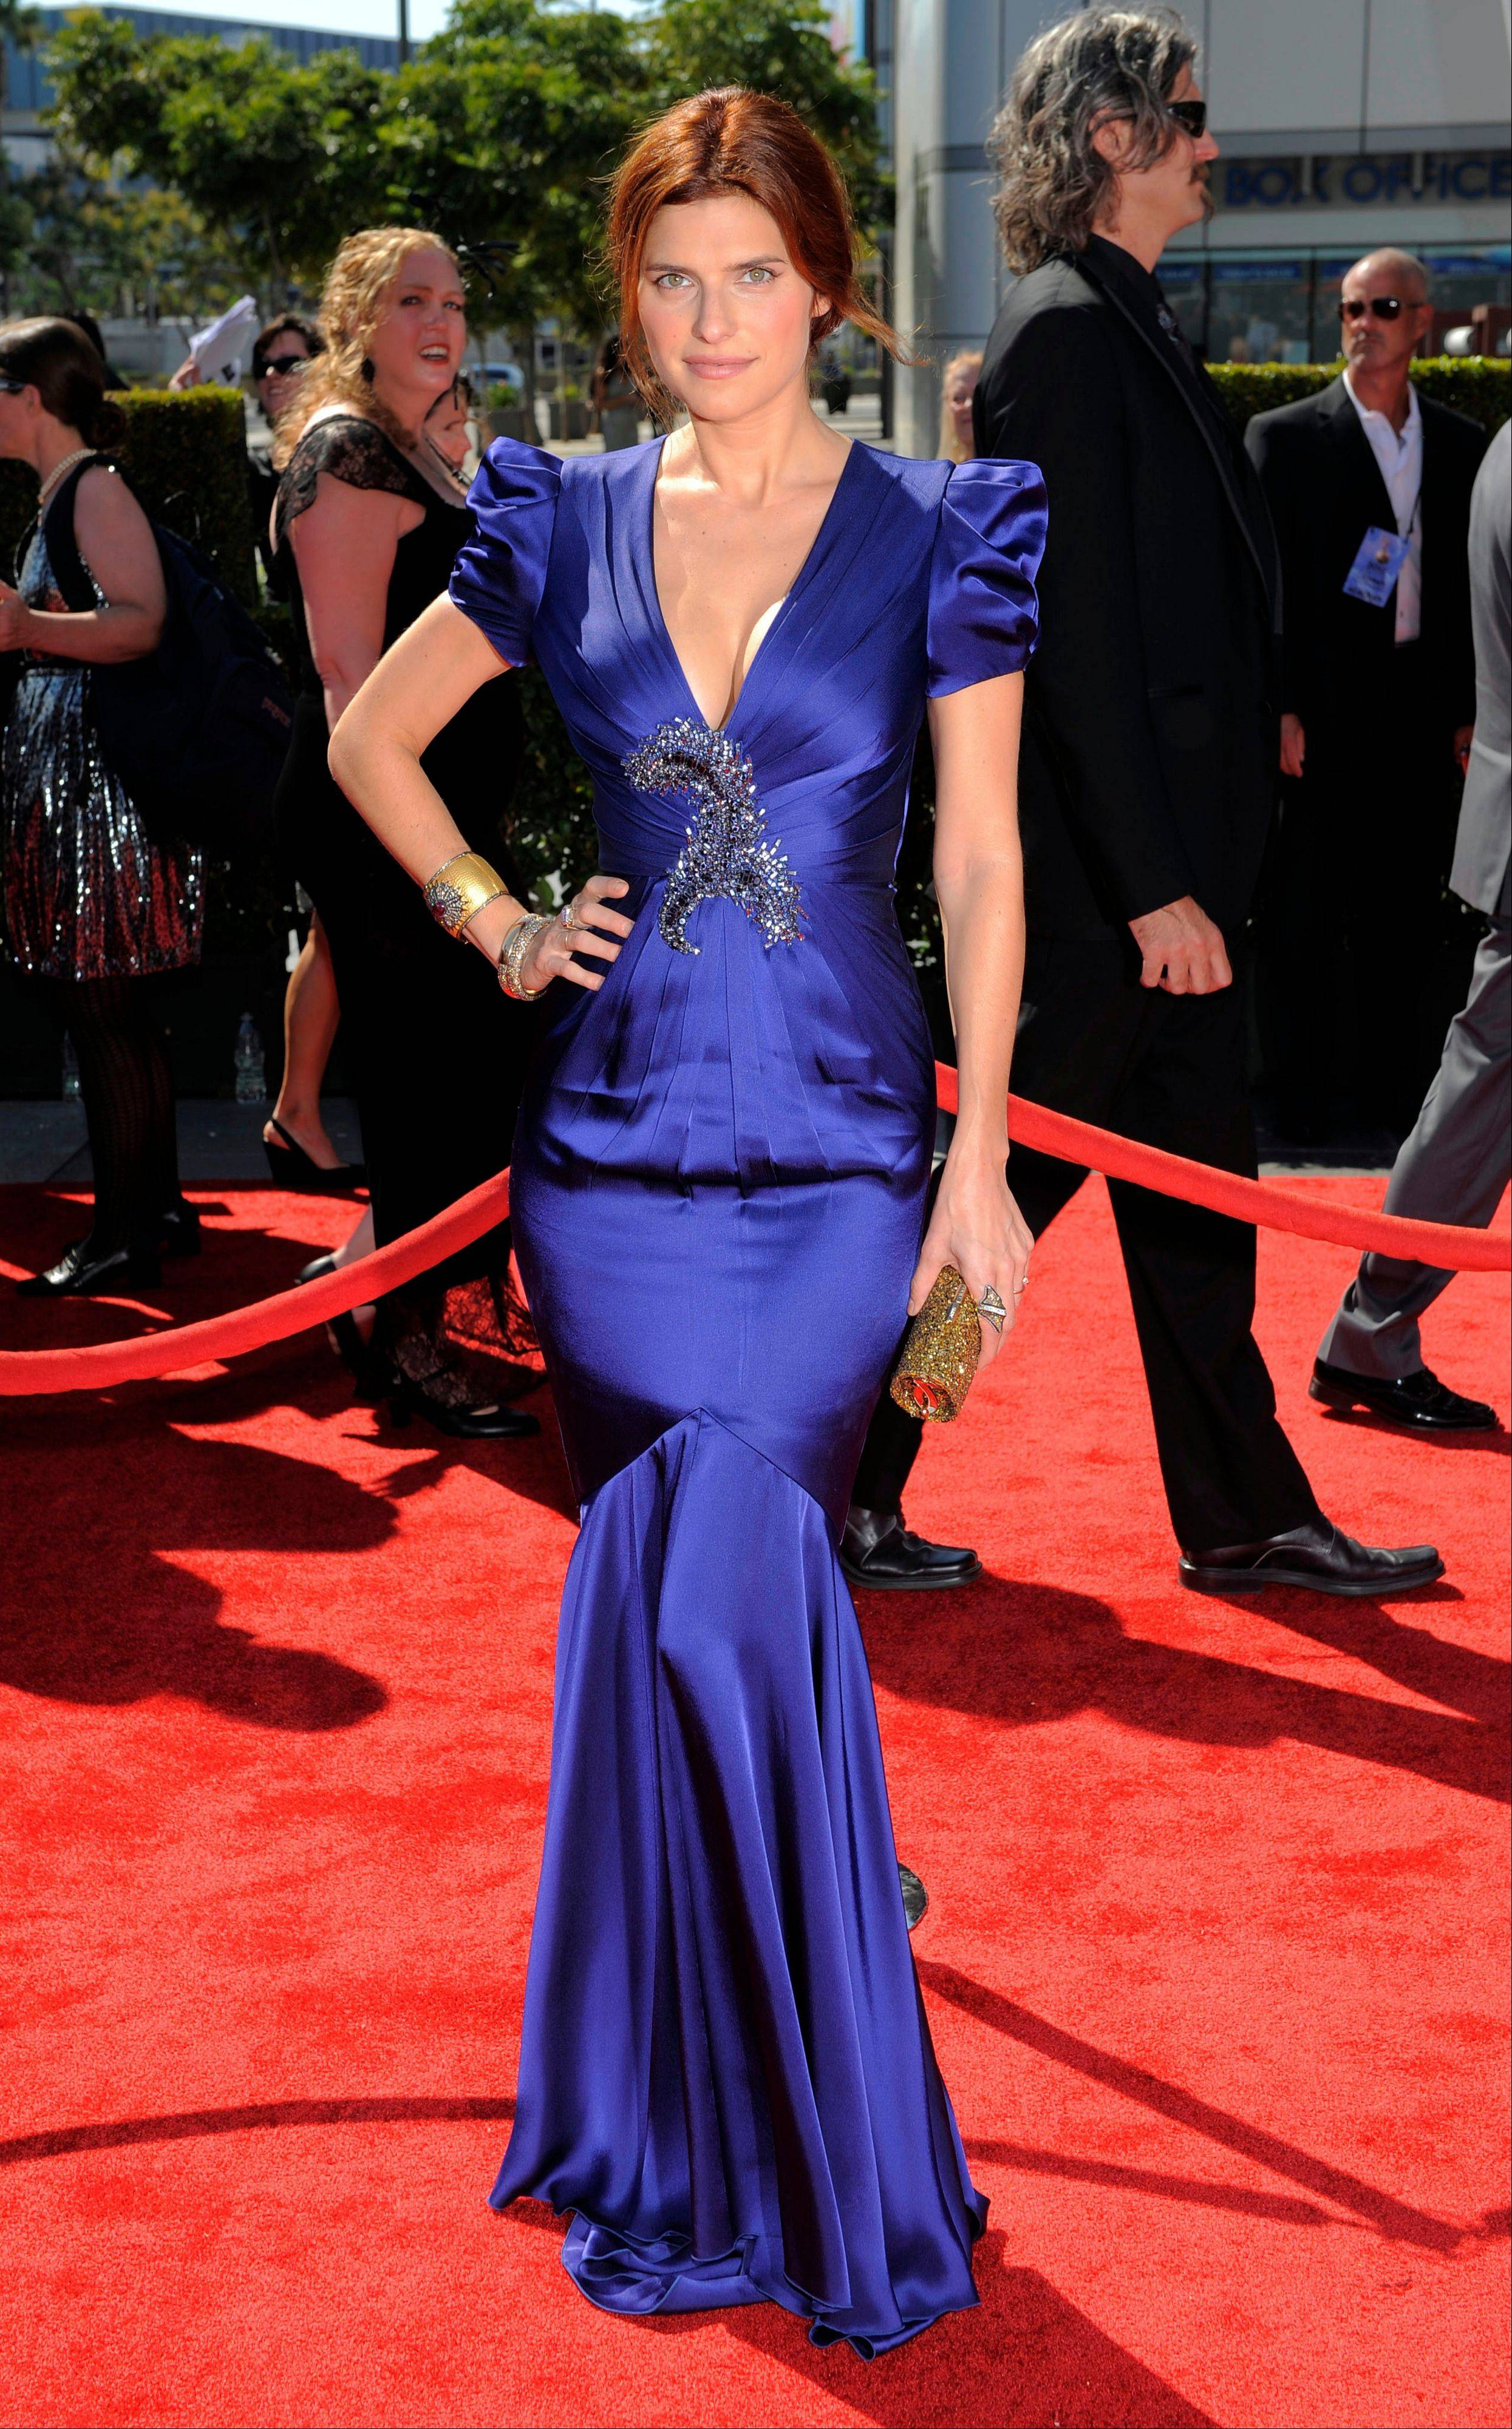 With the temperature topping 100 degrees last Saturday in Los Angeles, actress Lake Bell suggested not moving much to avoid sweating and achieved that in her narrow French gown at the 2012 Creative Arts Emmys.